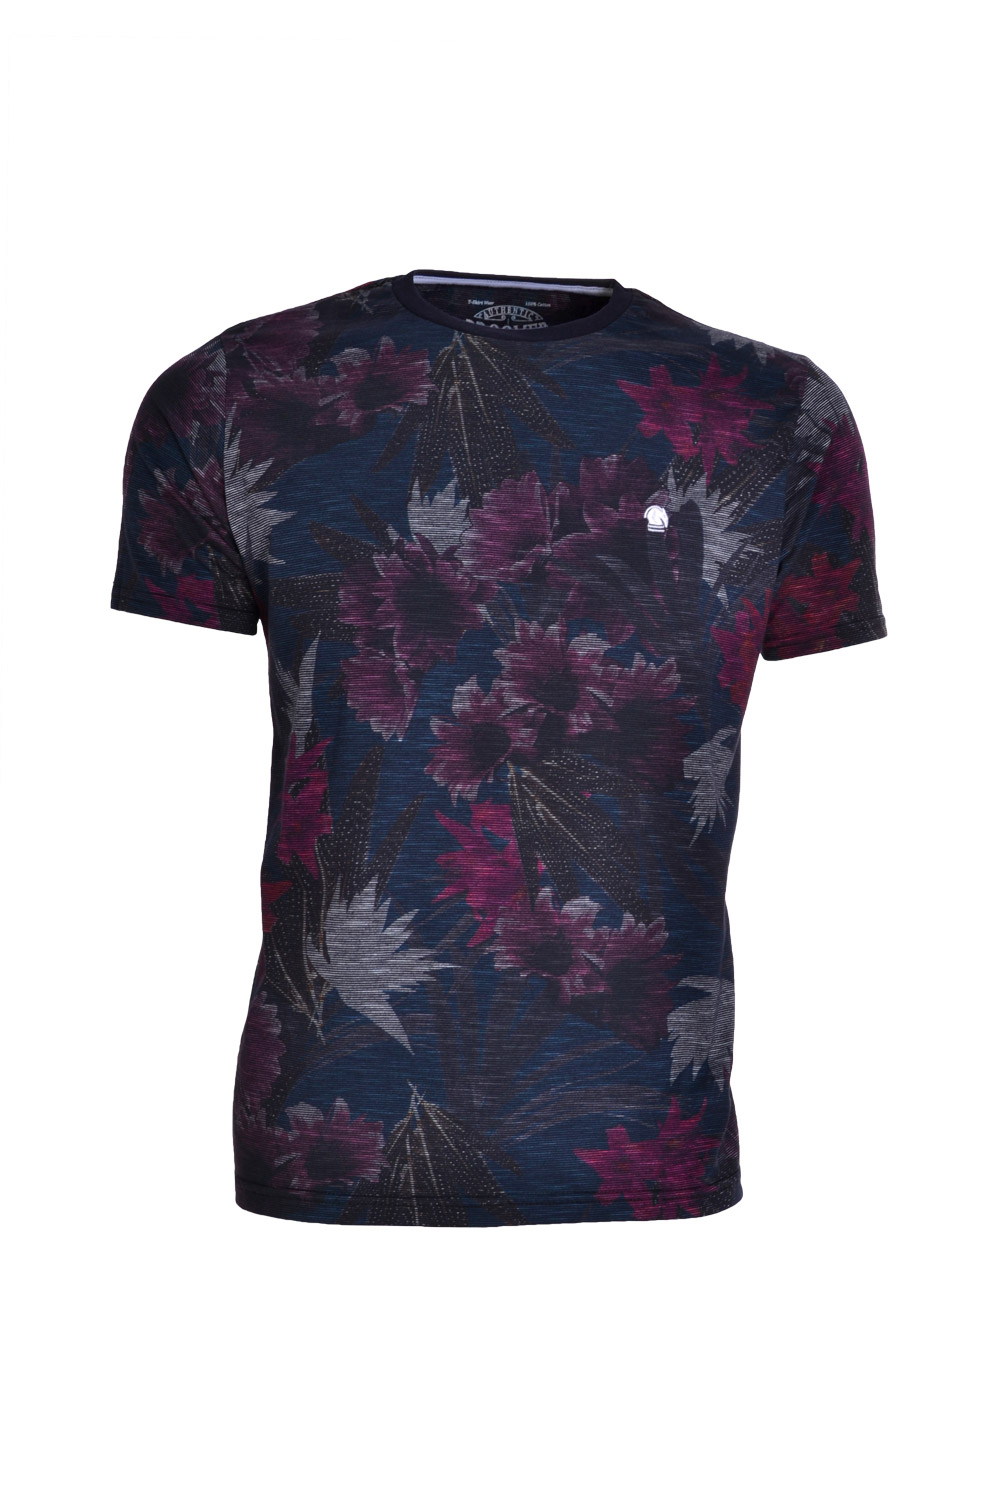 CAMISETA MC BLUES SUPER SLIM POLIALGODAO GOLA C FLORAL PRETO